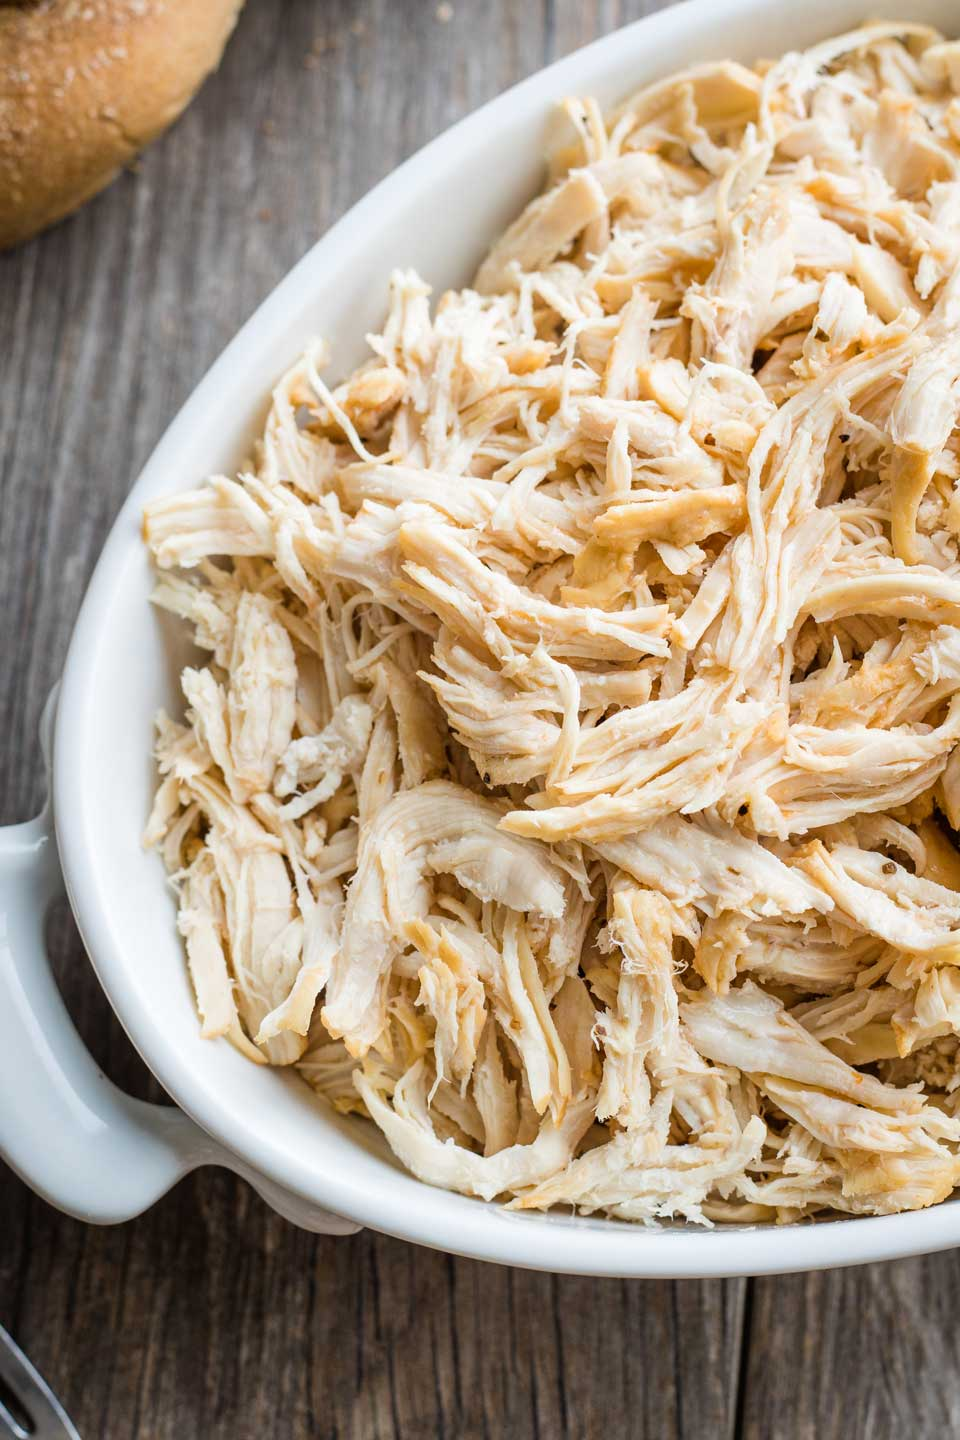 Closeup of a white oval dish filled with shredded chicken breast meat, ready to use in a recipe.